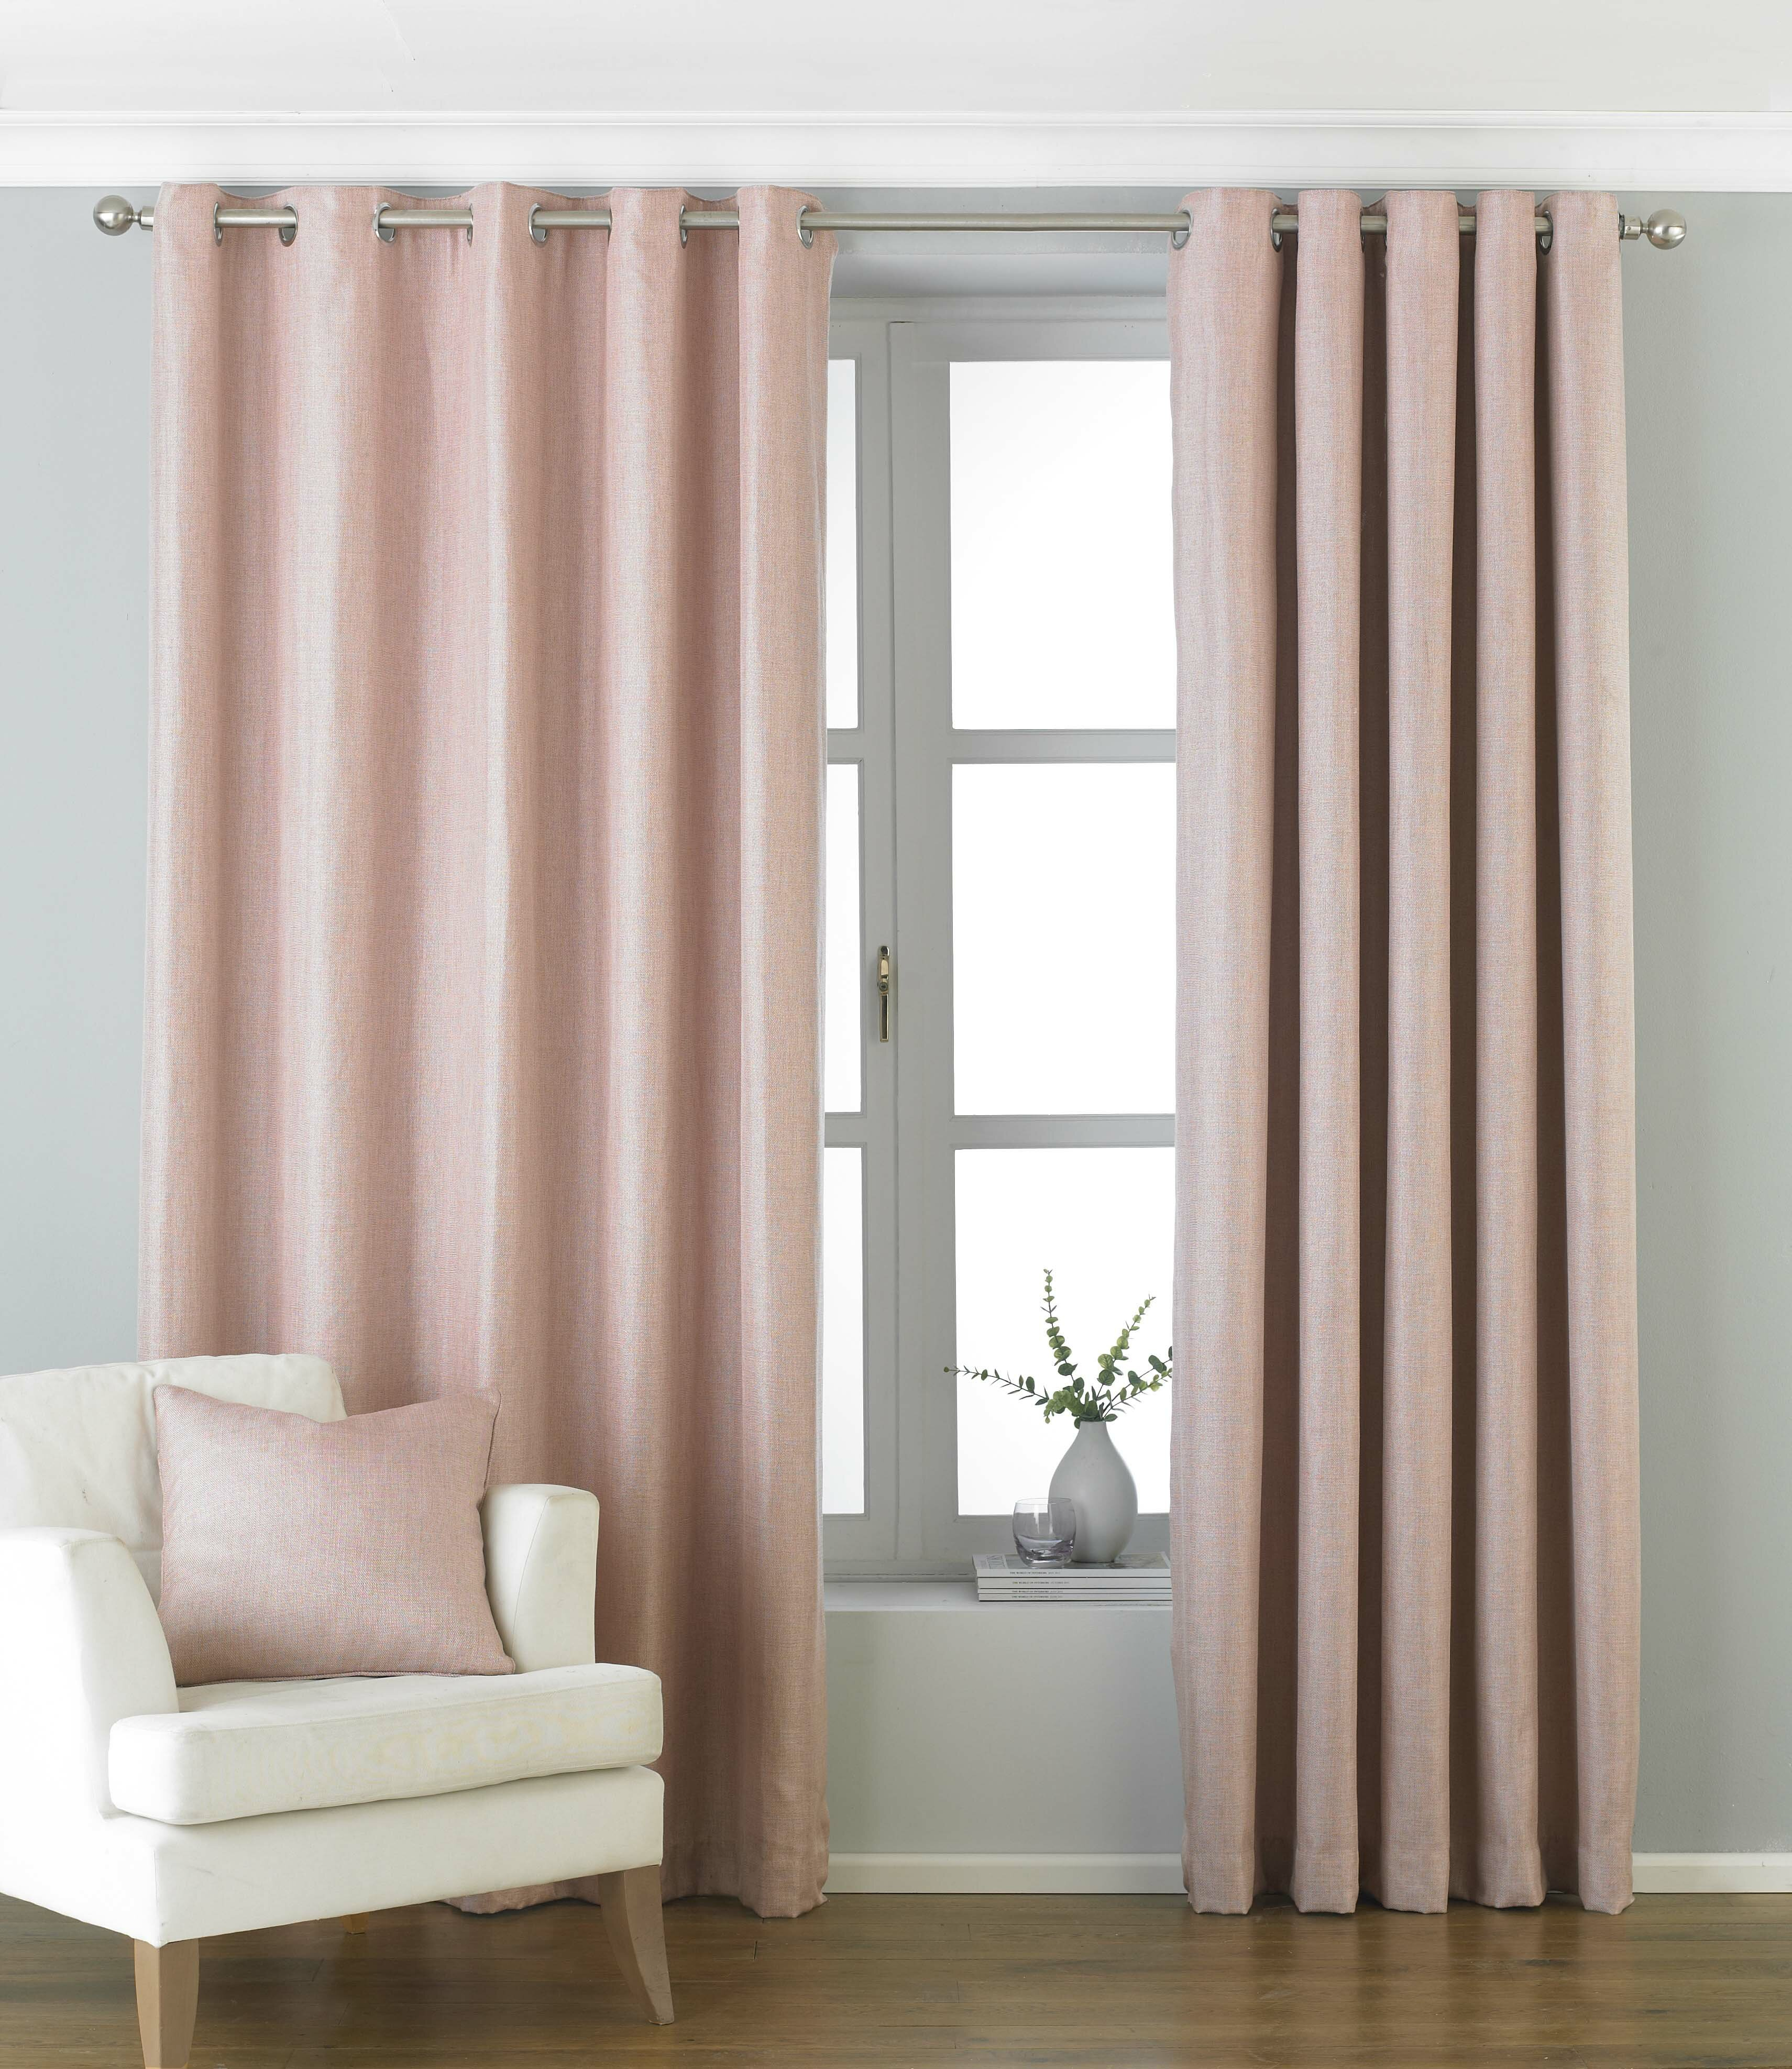 1 PAIR SOLITAIRE FULLY LINED EYELET OR TAPED HEADER CURTAINS ~Many Colours//Sizes